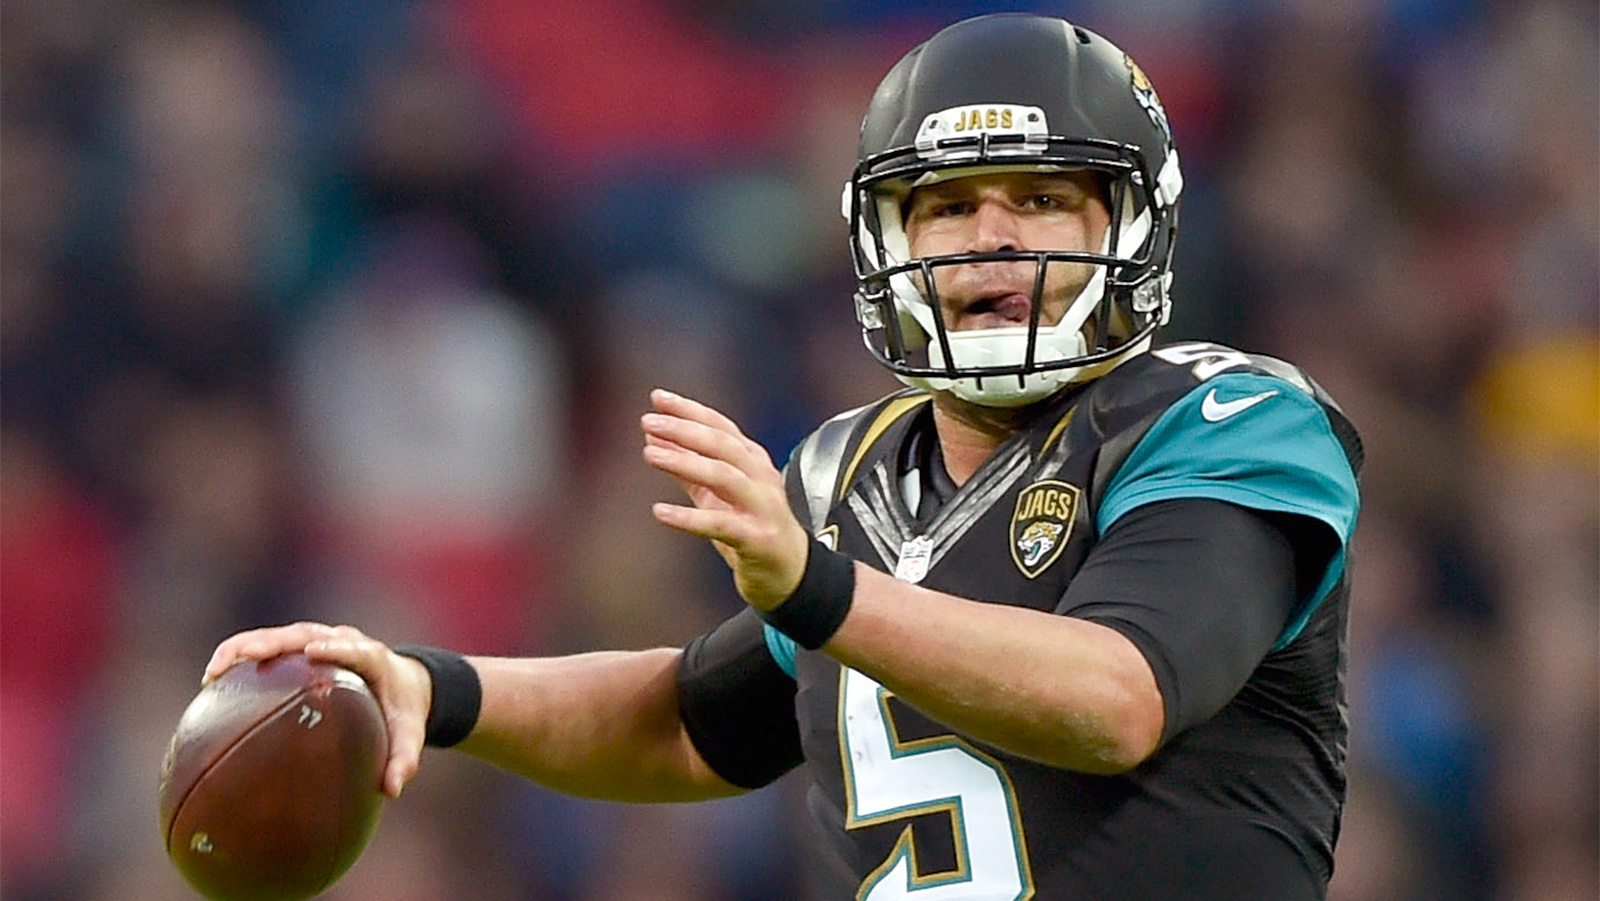 Jacksonville and the seven most underrated NFL teams entering 2016